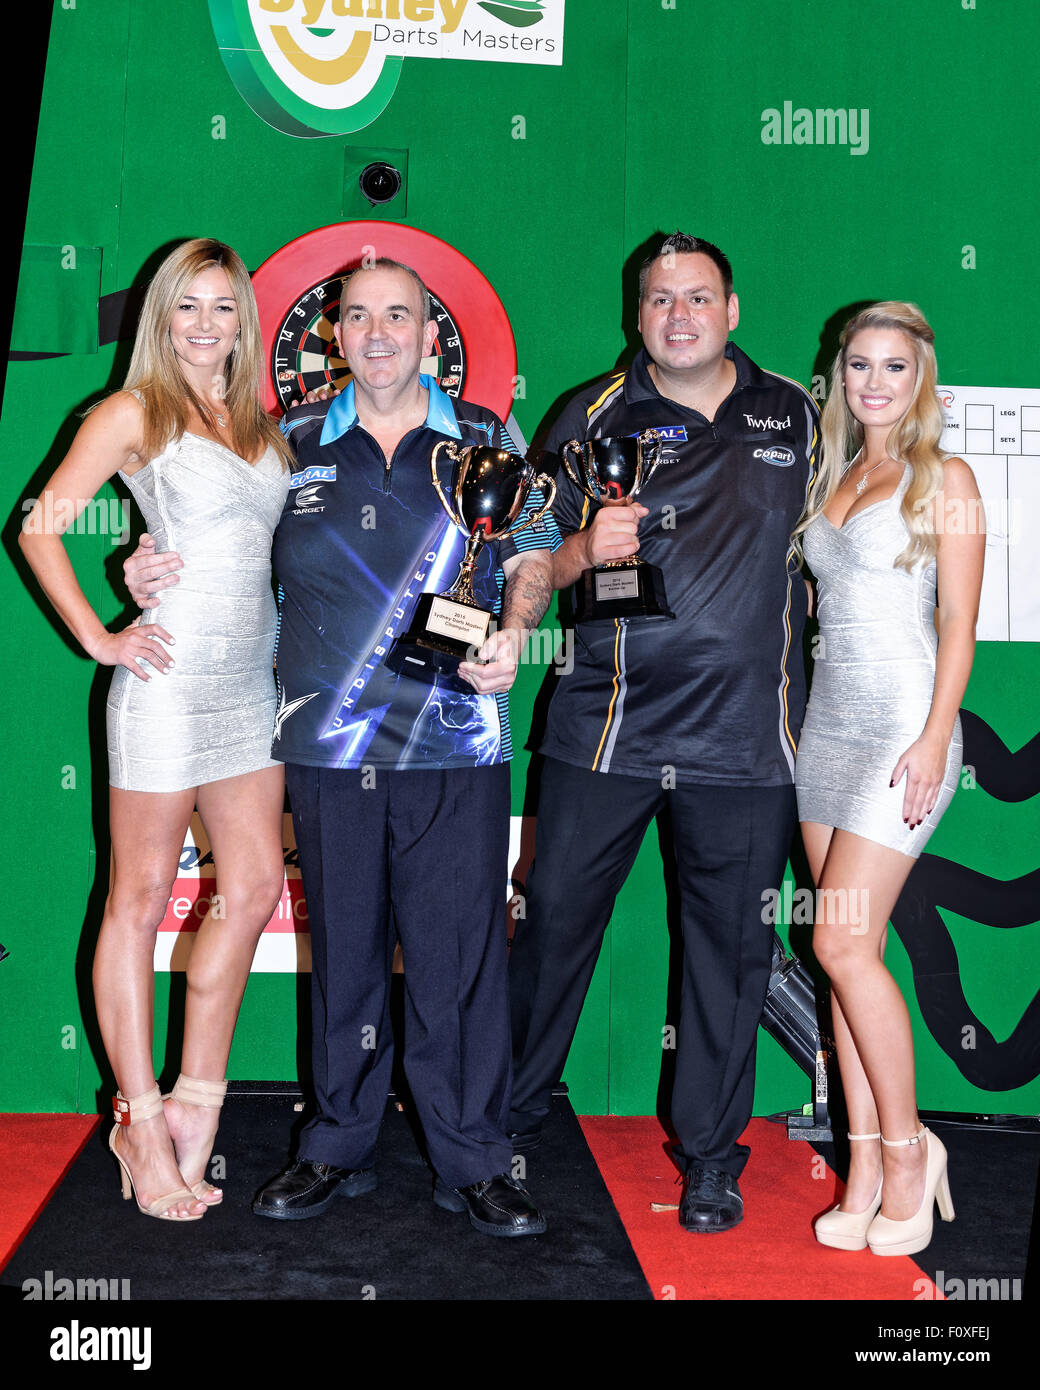 Page 2 - Phil Taylor Darts High Resolution Stock Photography and ...